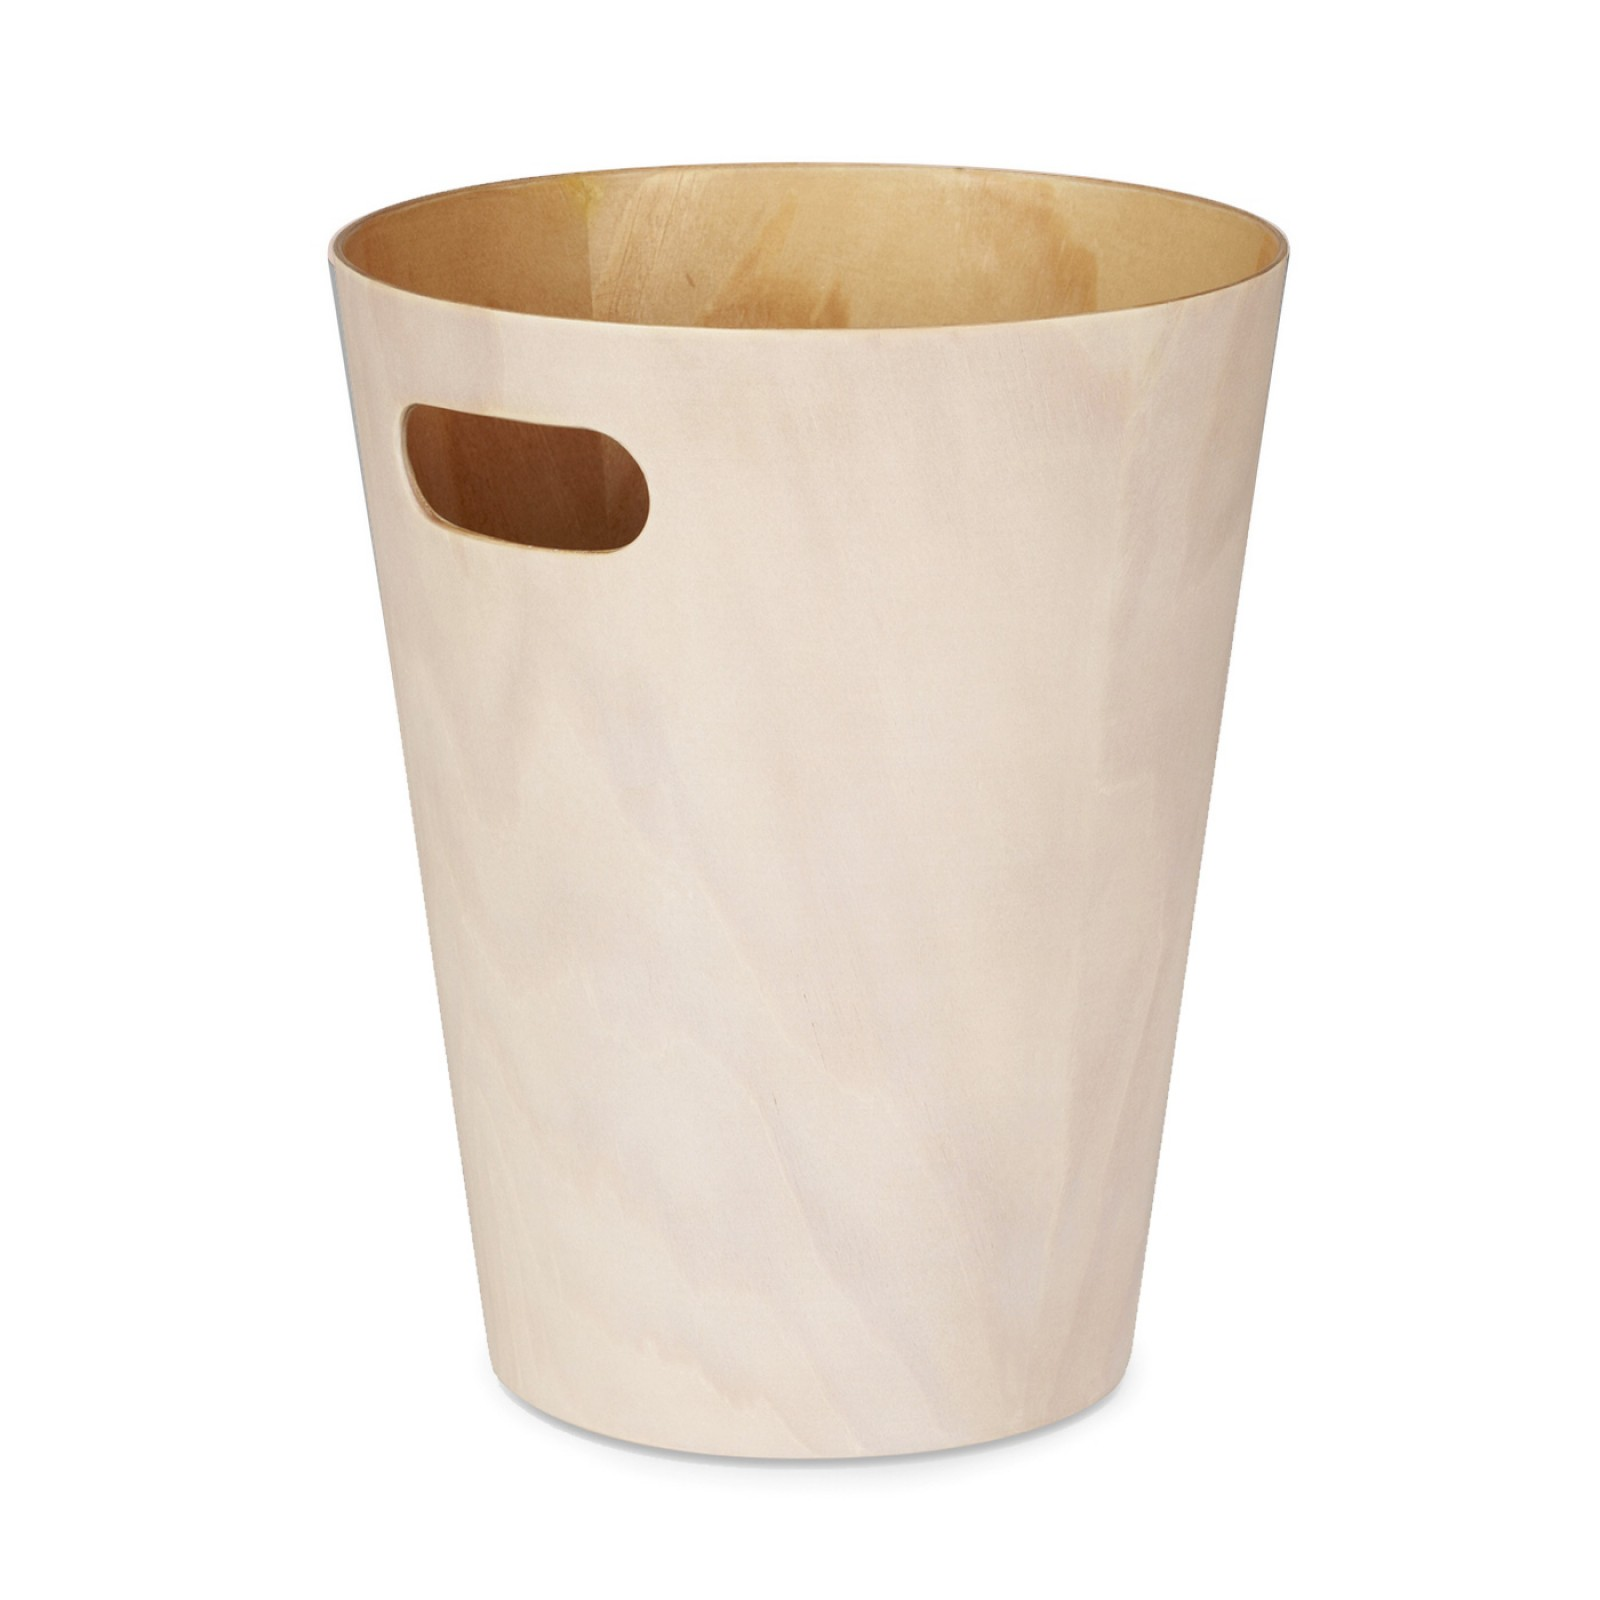 Woodrow Trash Can (White / Natural) - Umbra